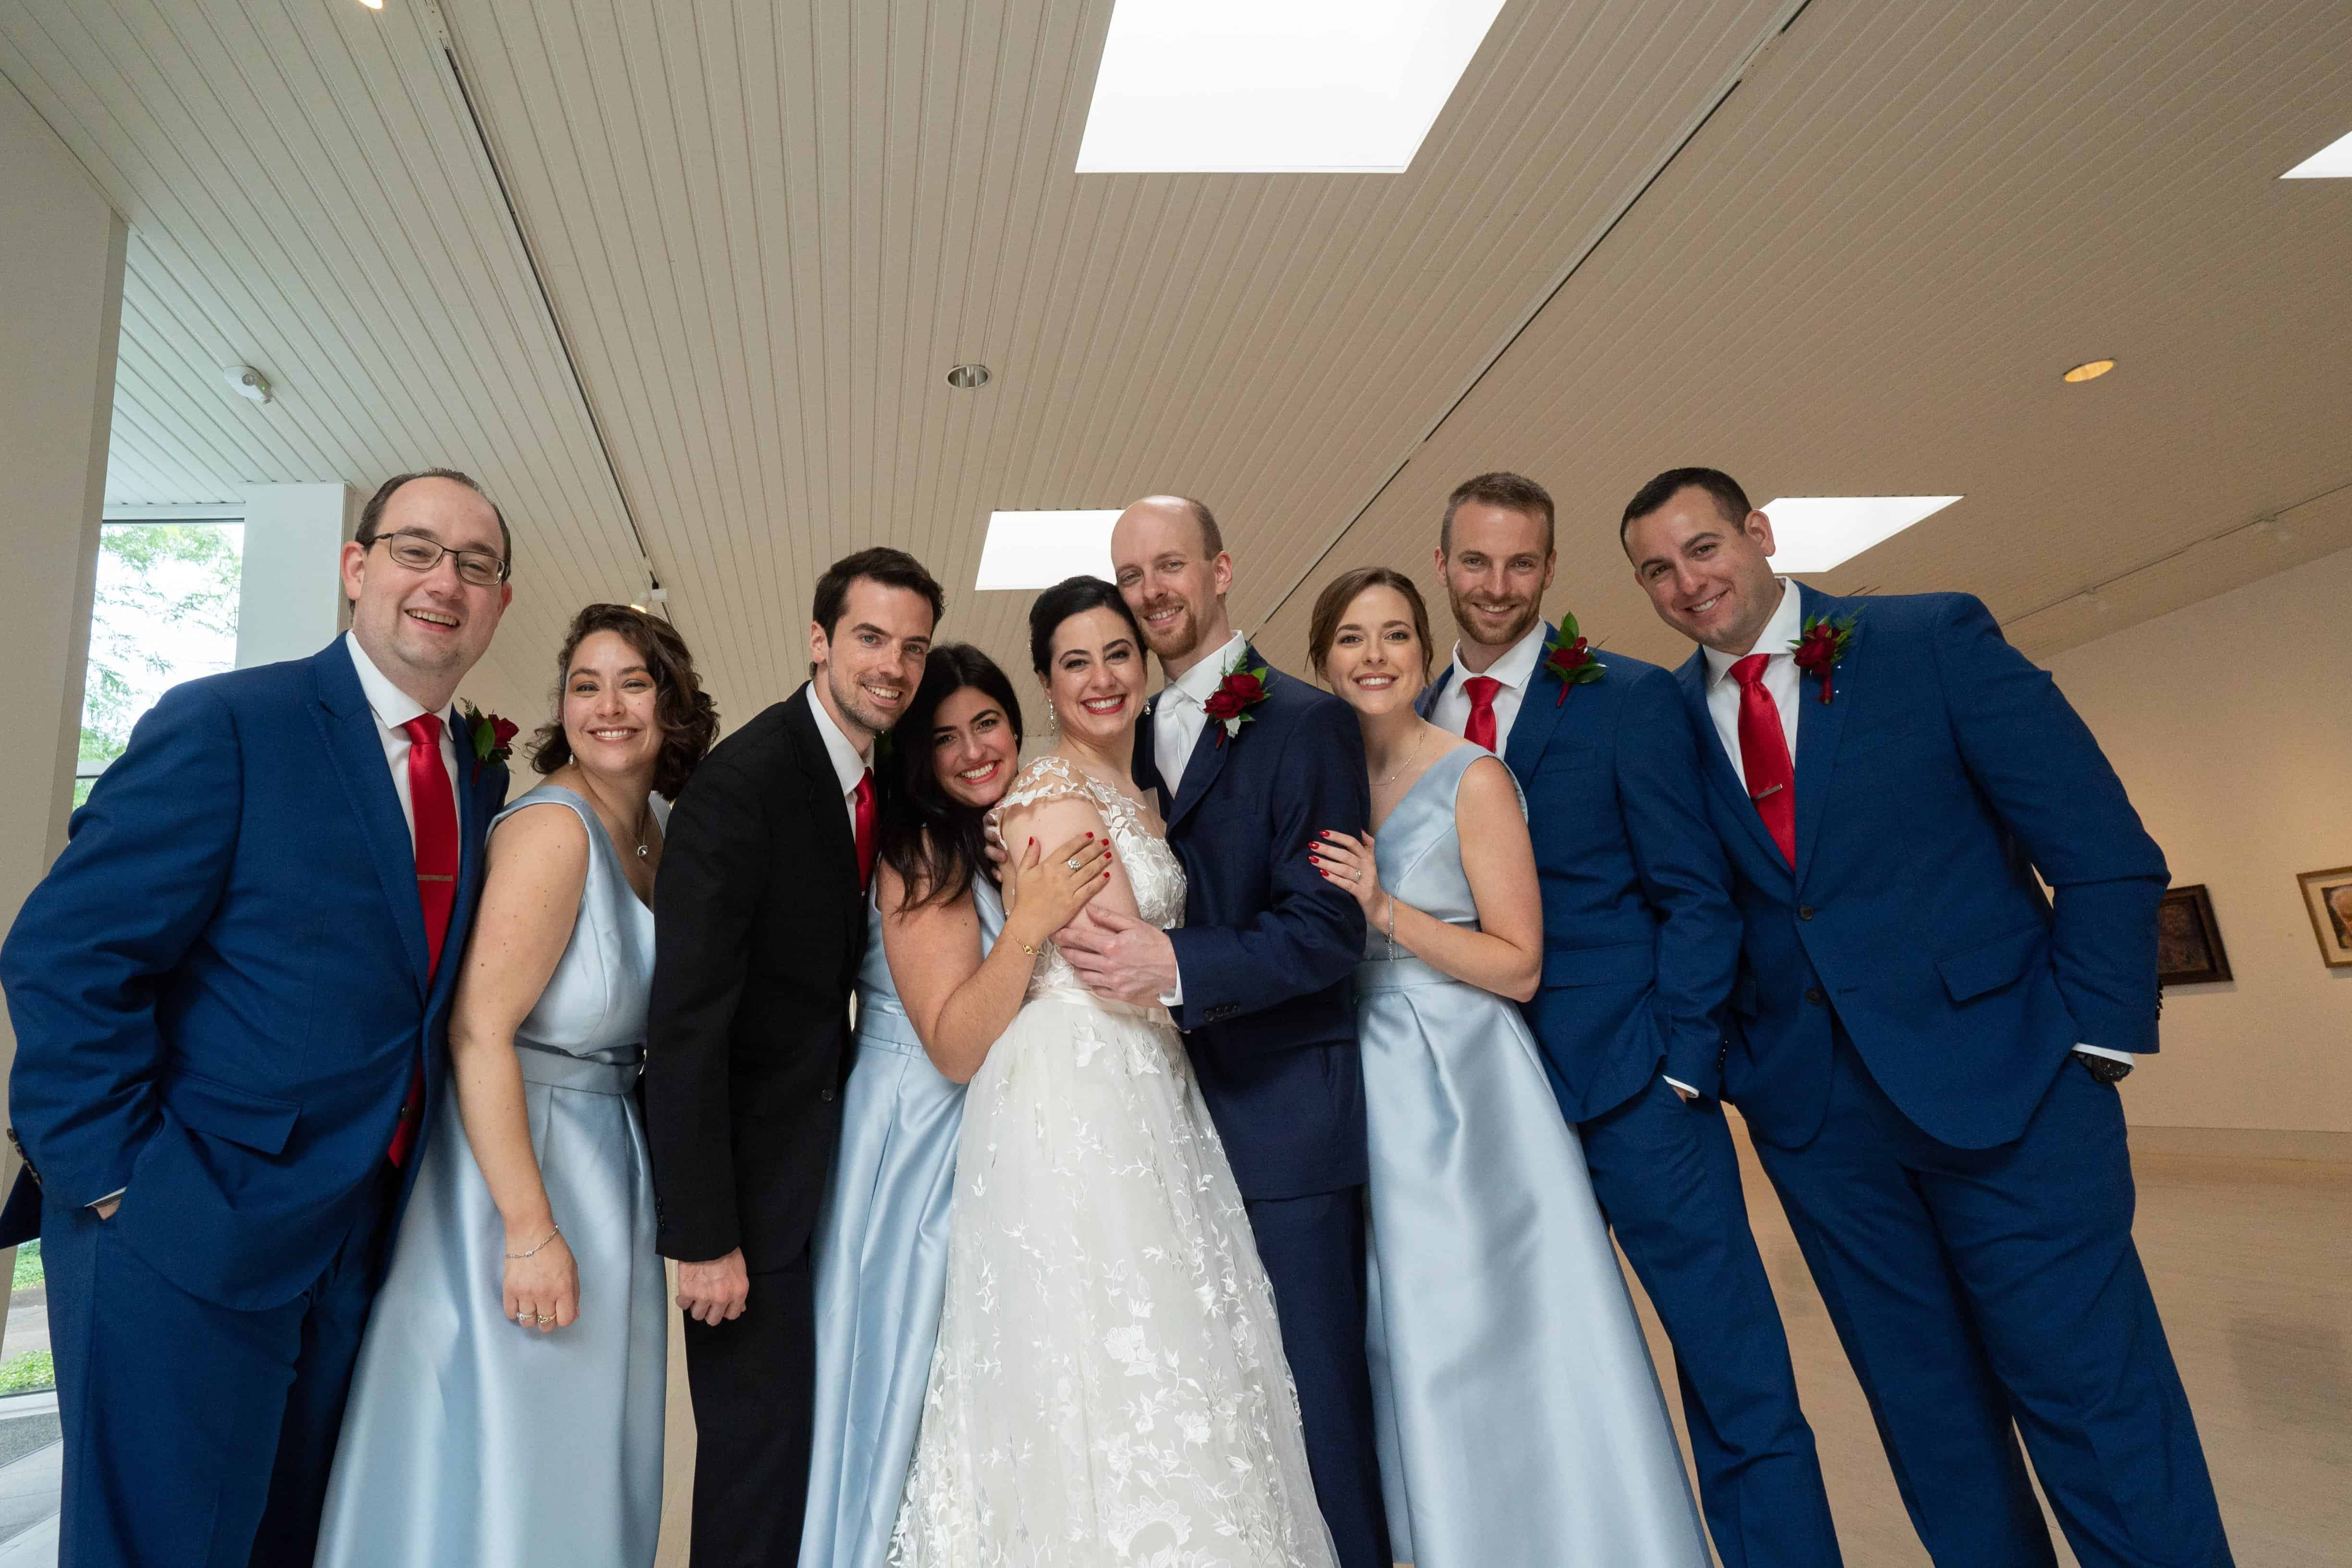 wedding day picture of bridal party at Butler Museum of Art Youngstown